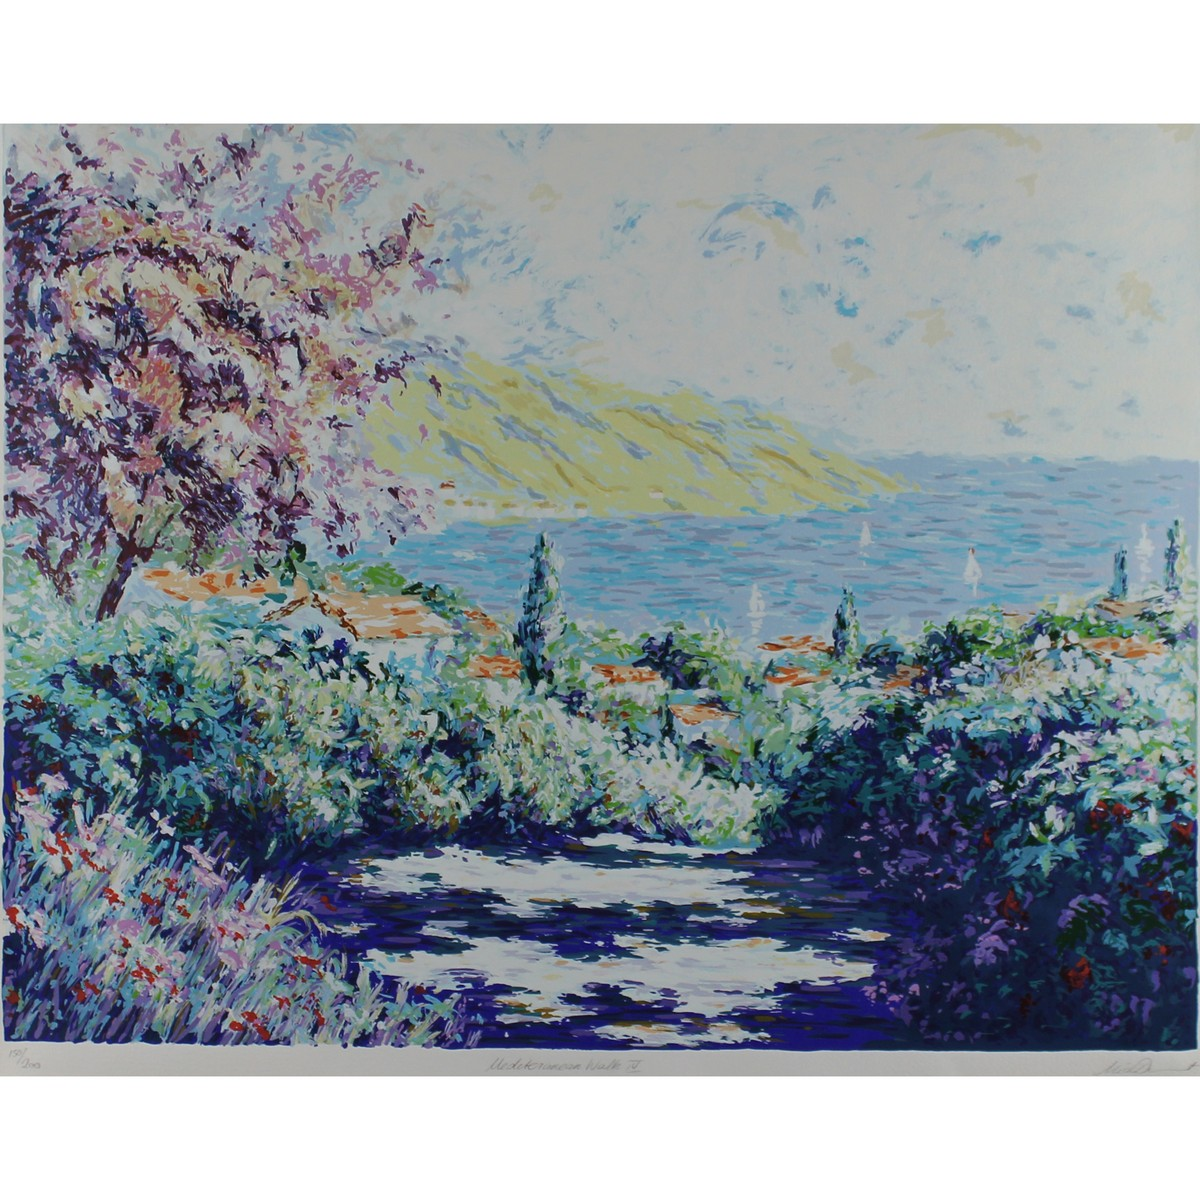 Lot 46 - Mick Illegible name Contemporary Mediterranean Walk IV